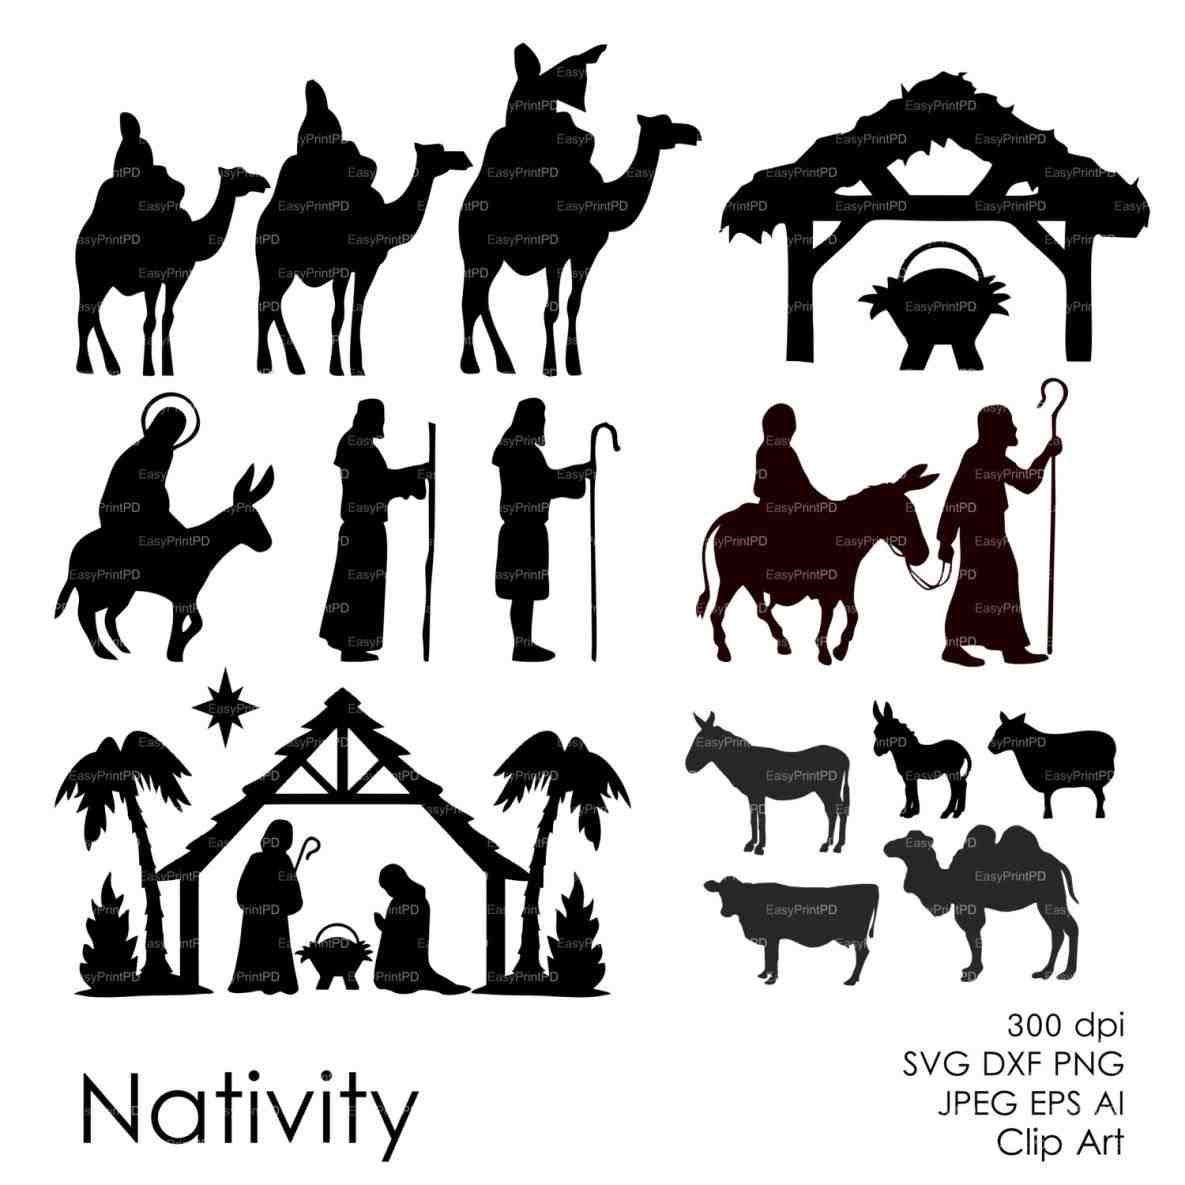 Nativity Silhouette Patterns Download   Free Download Best Nativity - Free Printable Nativity Silhouette